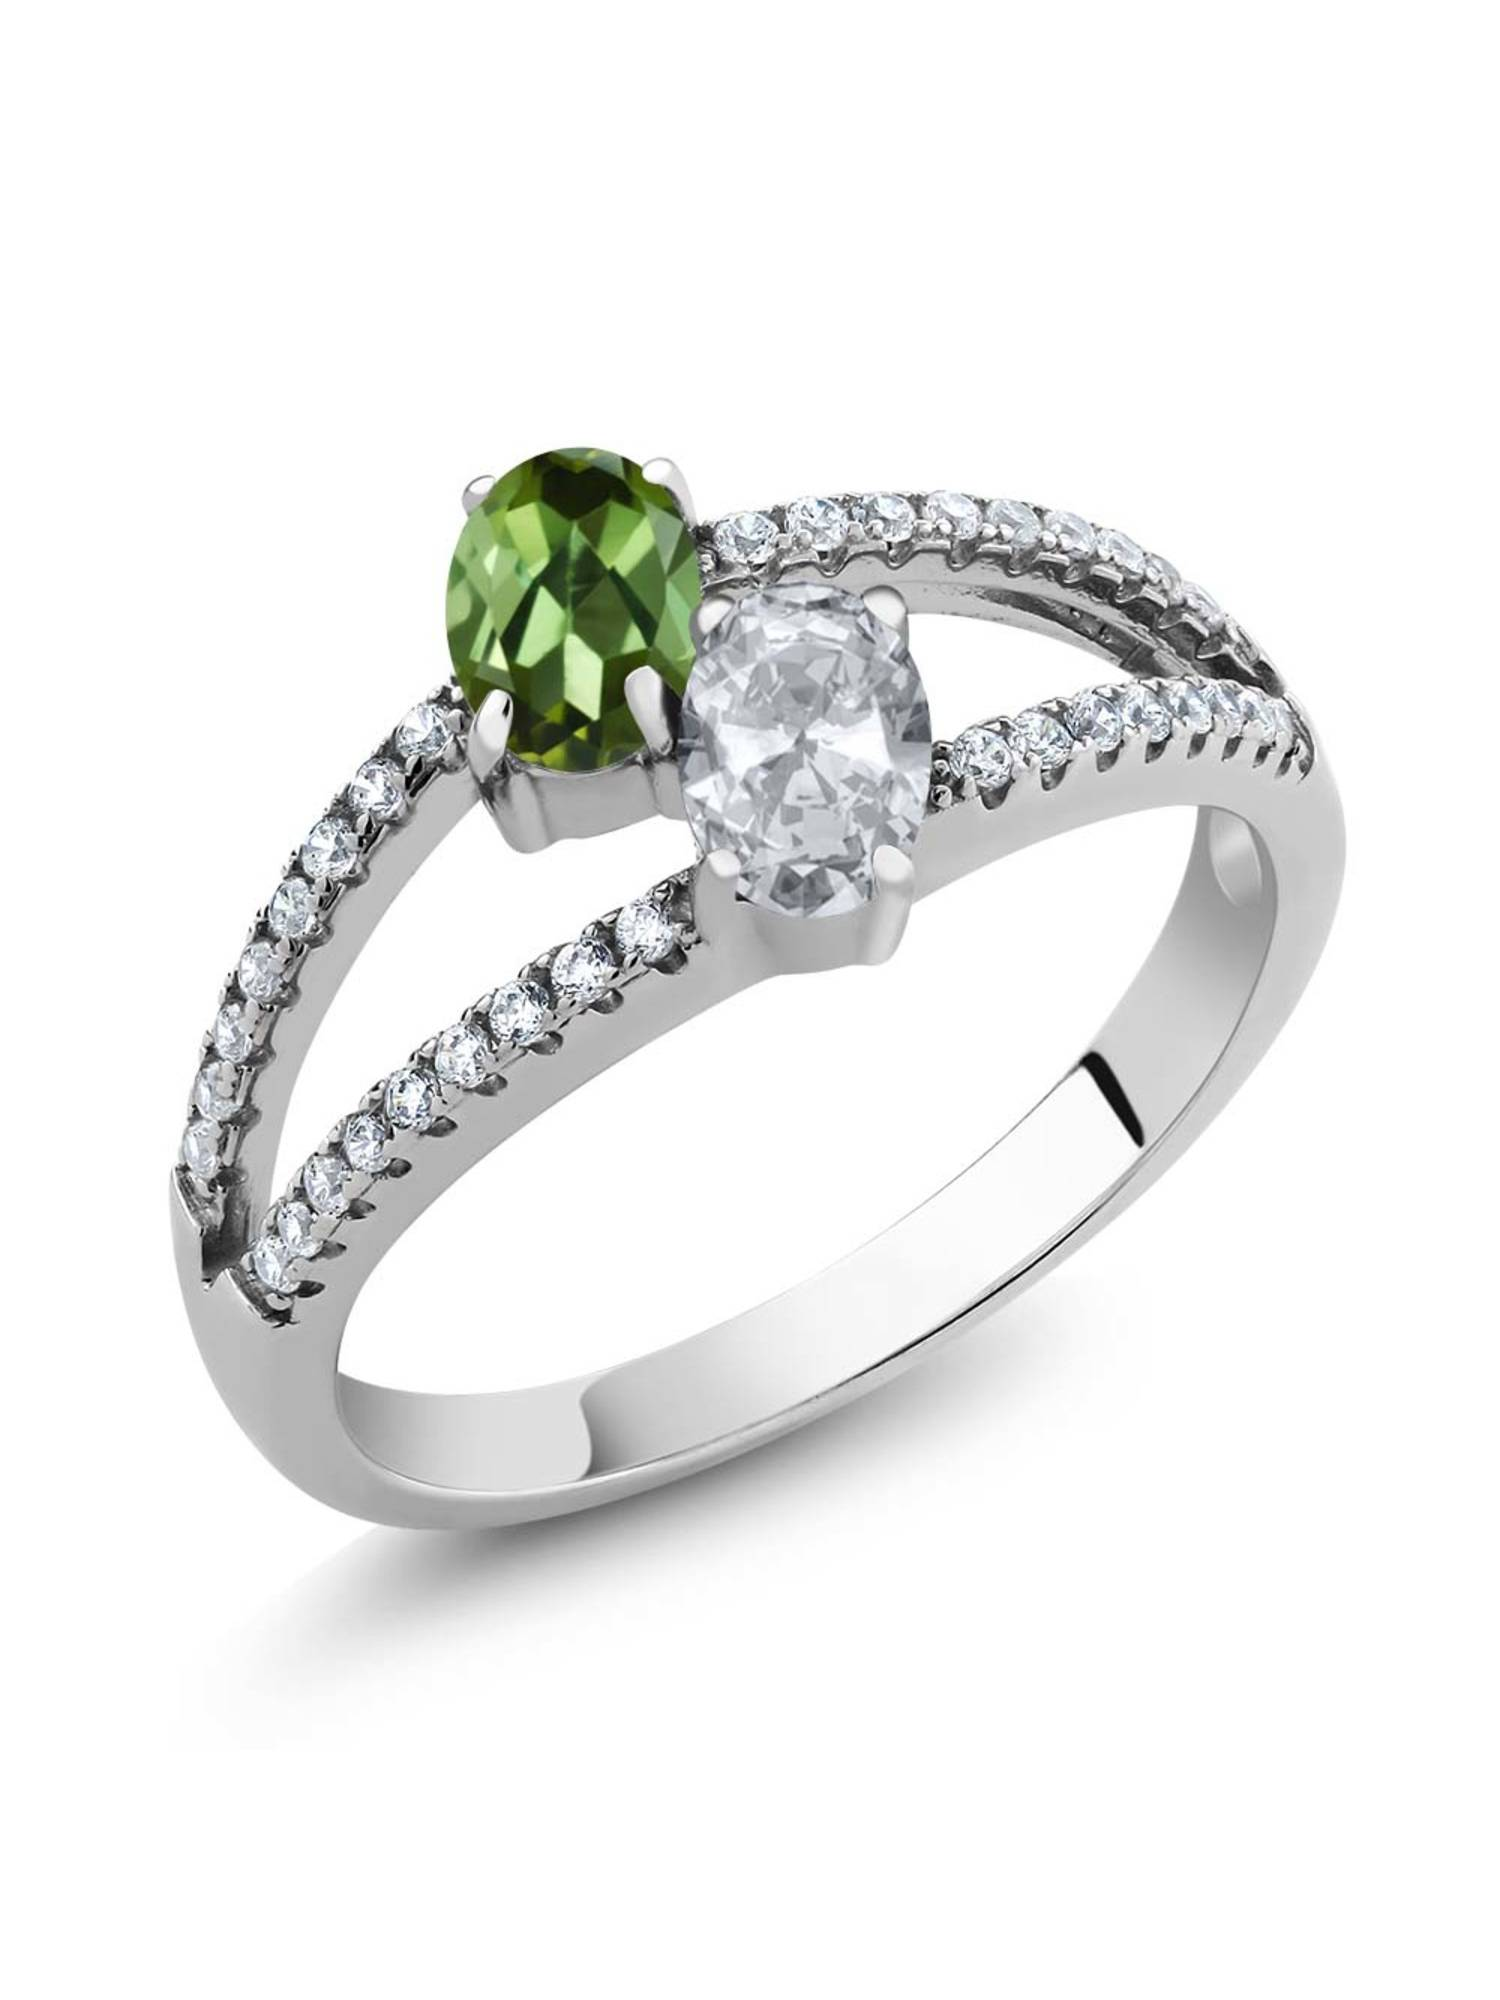 1.41 Ct Oval Green Tourmaline White Topaz Two Stone 925 Sterling Silver Ring by